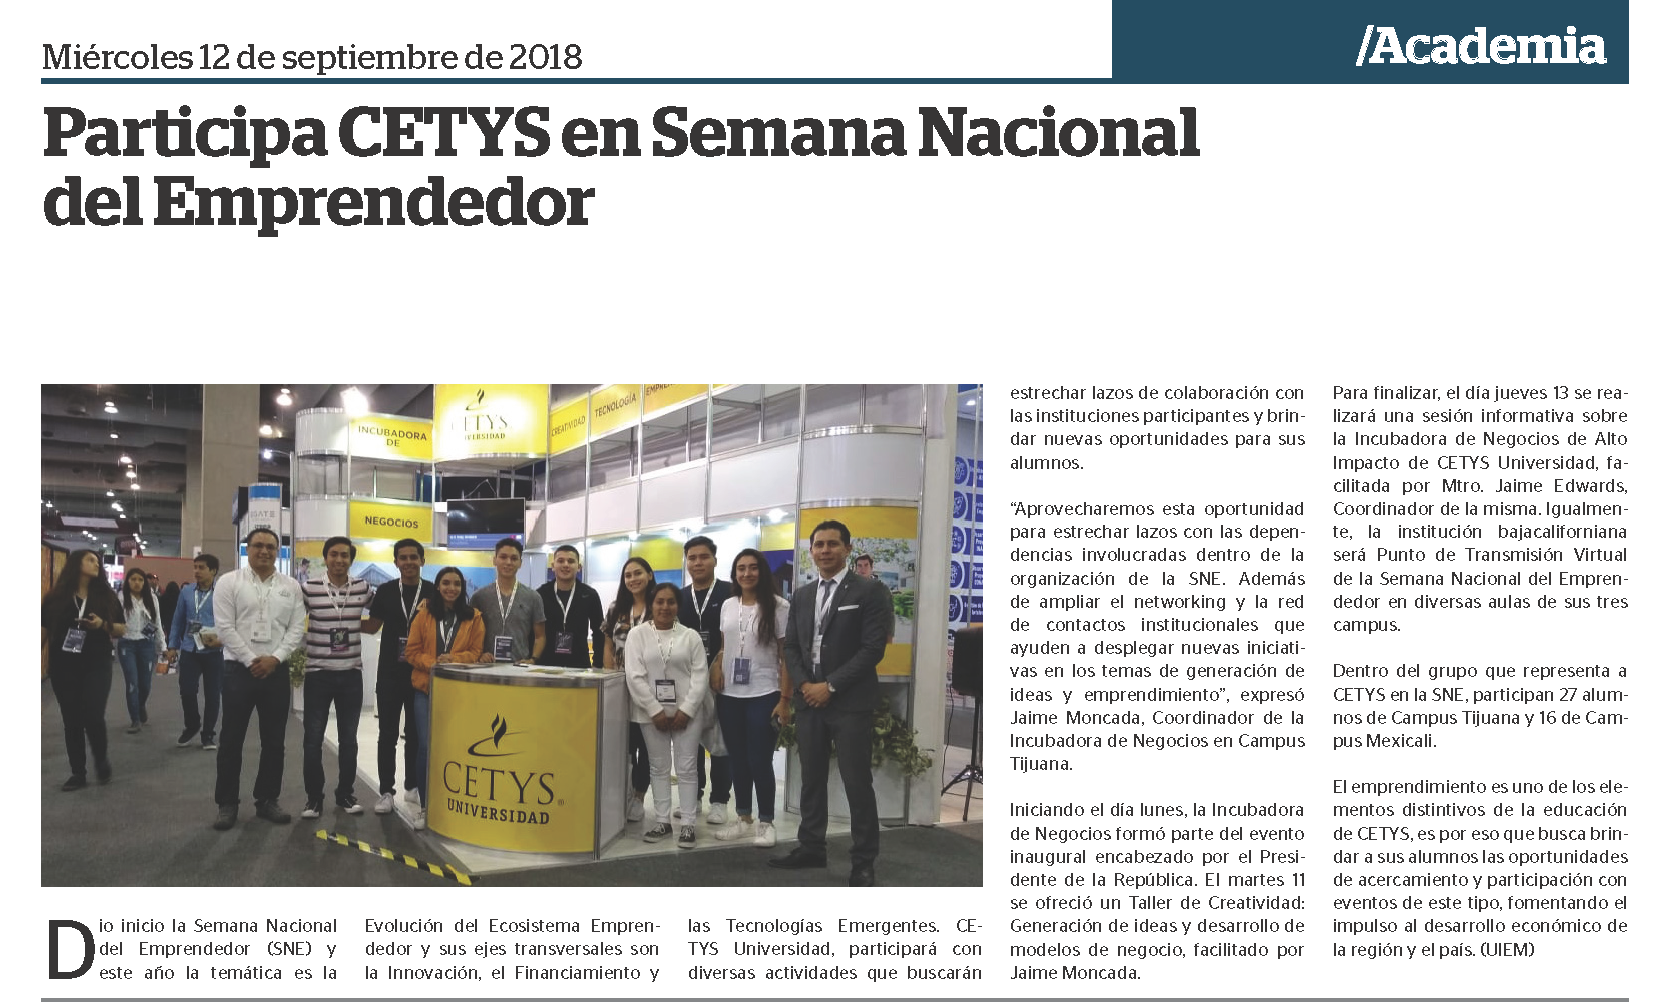 cetys